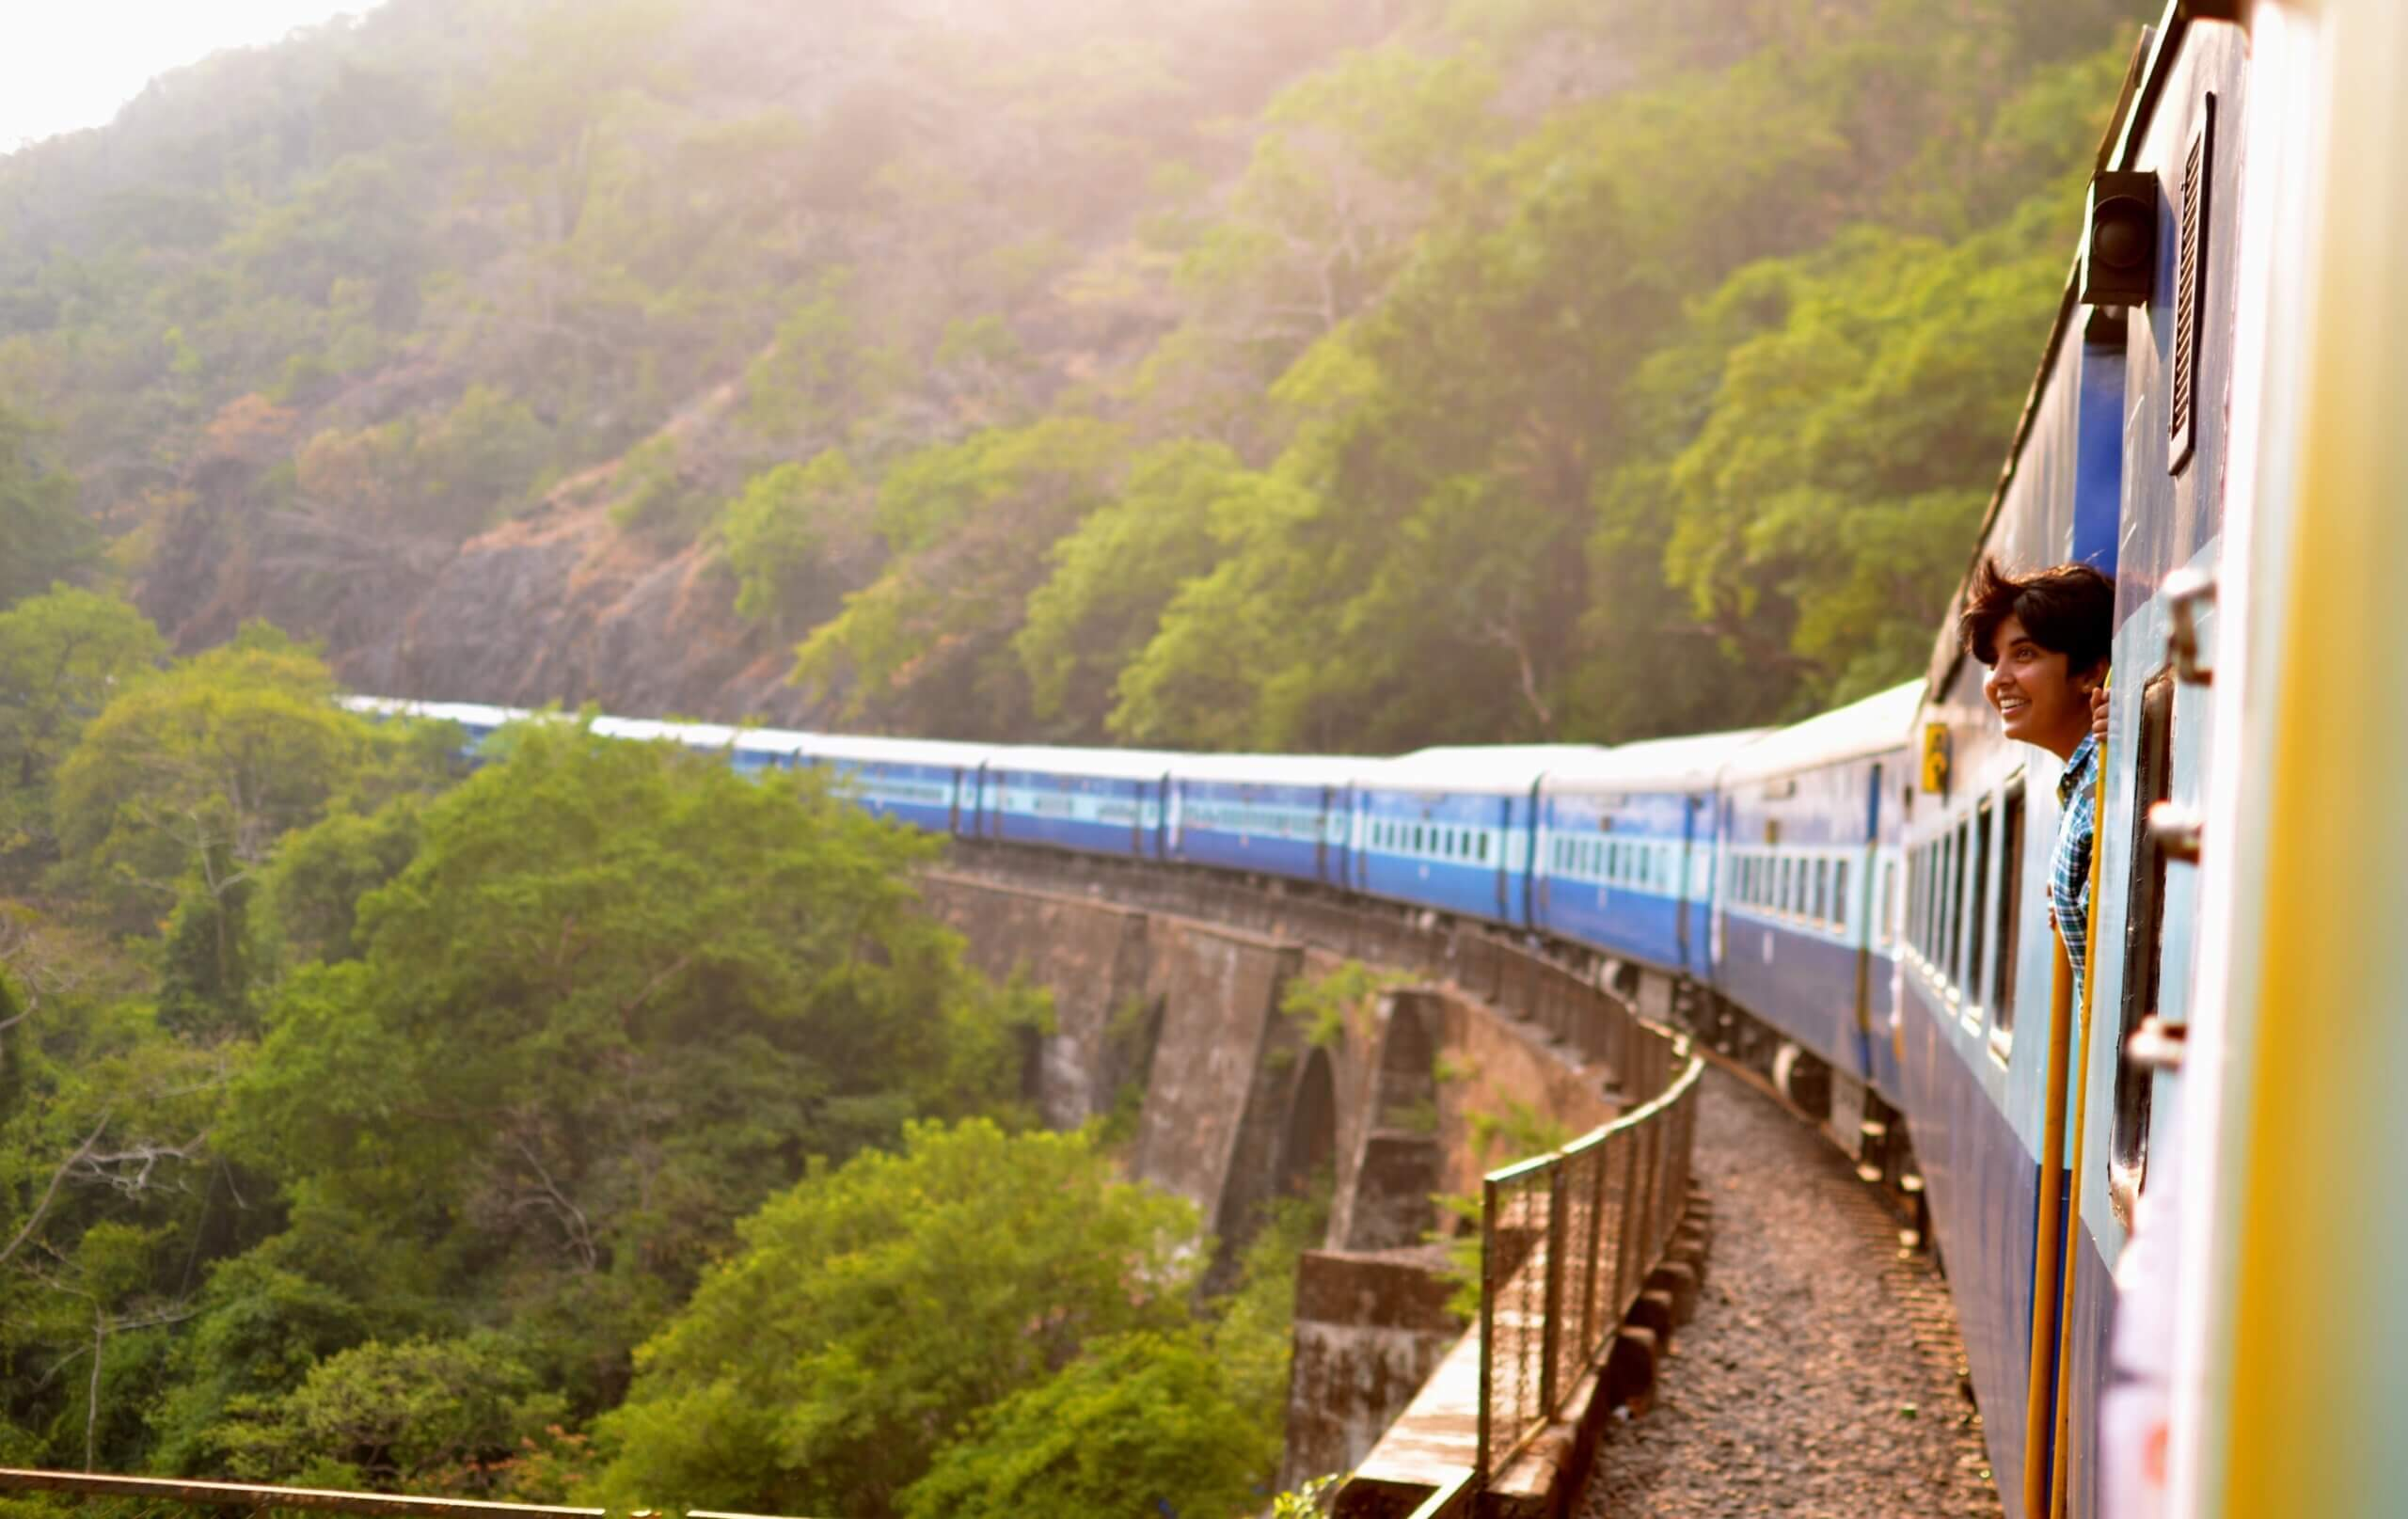 goa india woman on train beautiful view happy joy travel wanderlust locomotive mountains forest